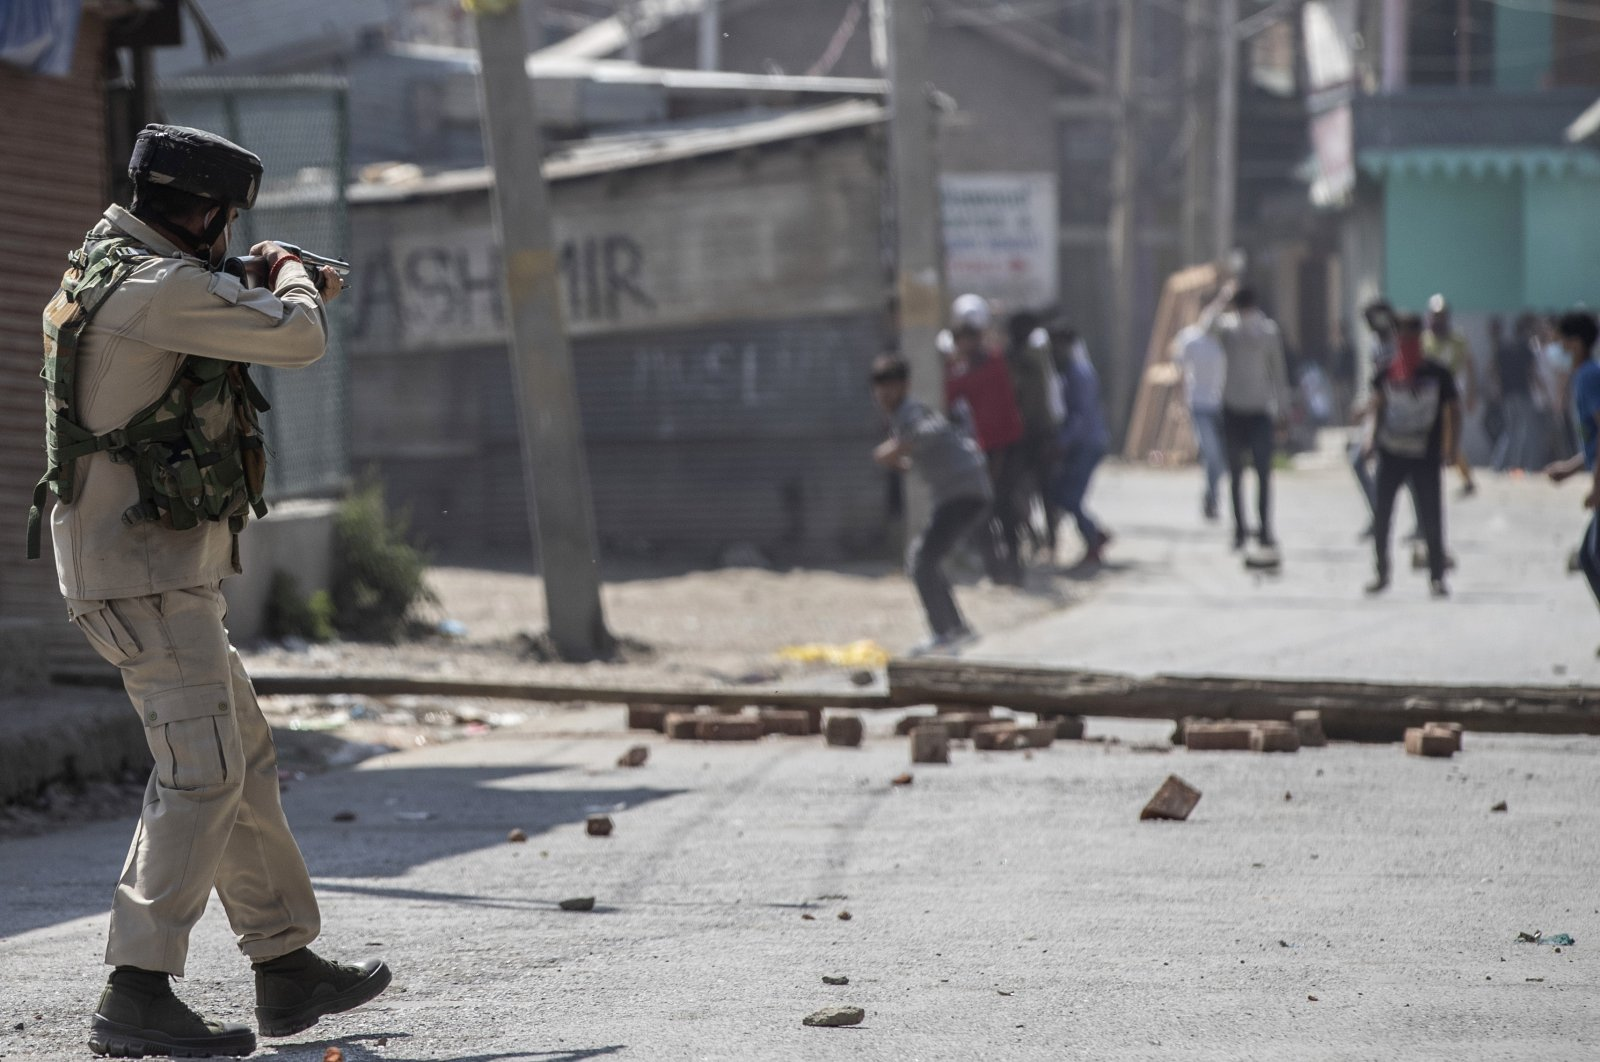 An Indian paramilitary soldier aims his pellet gun on Kashmiri protesters marching on the streets in solidarity with rebels engaged in a gunbattle with soldiers, in Srinagar, Indian controlled Kashmir, Sept. 17, 2020. (AP Photo)